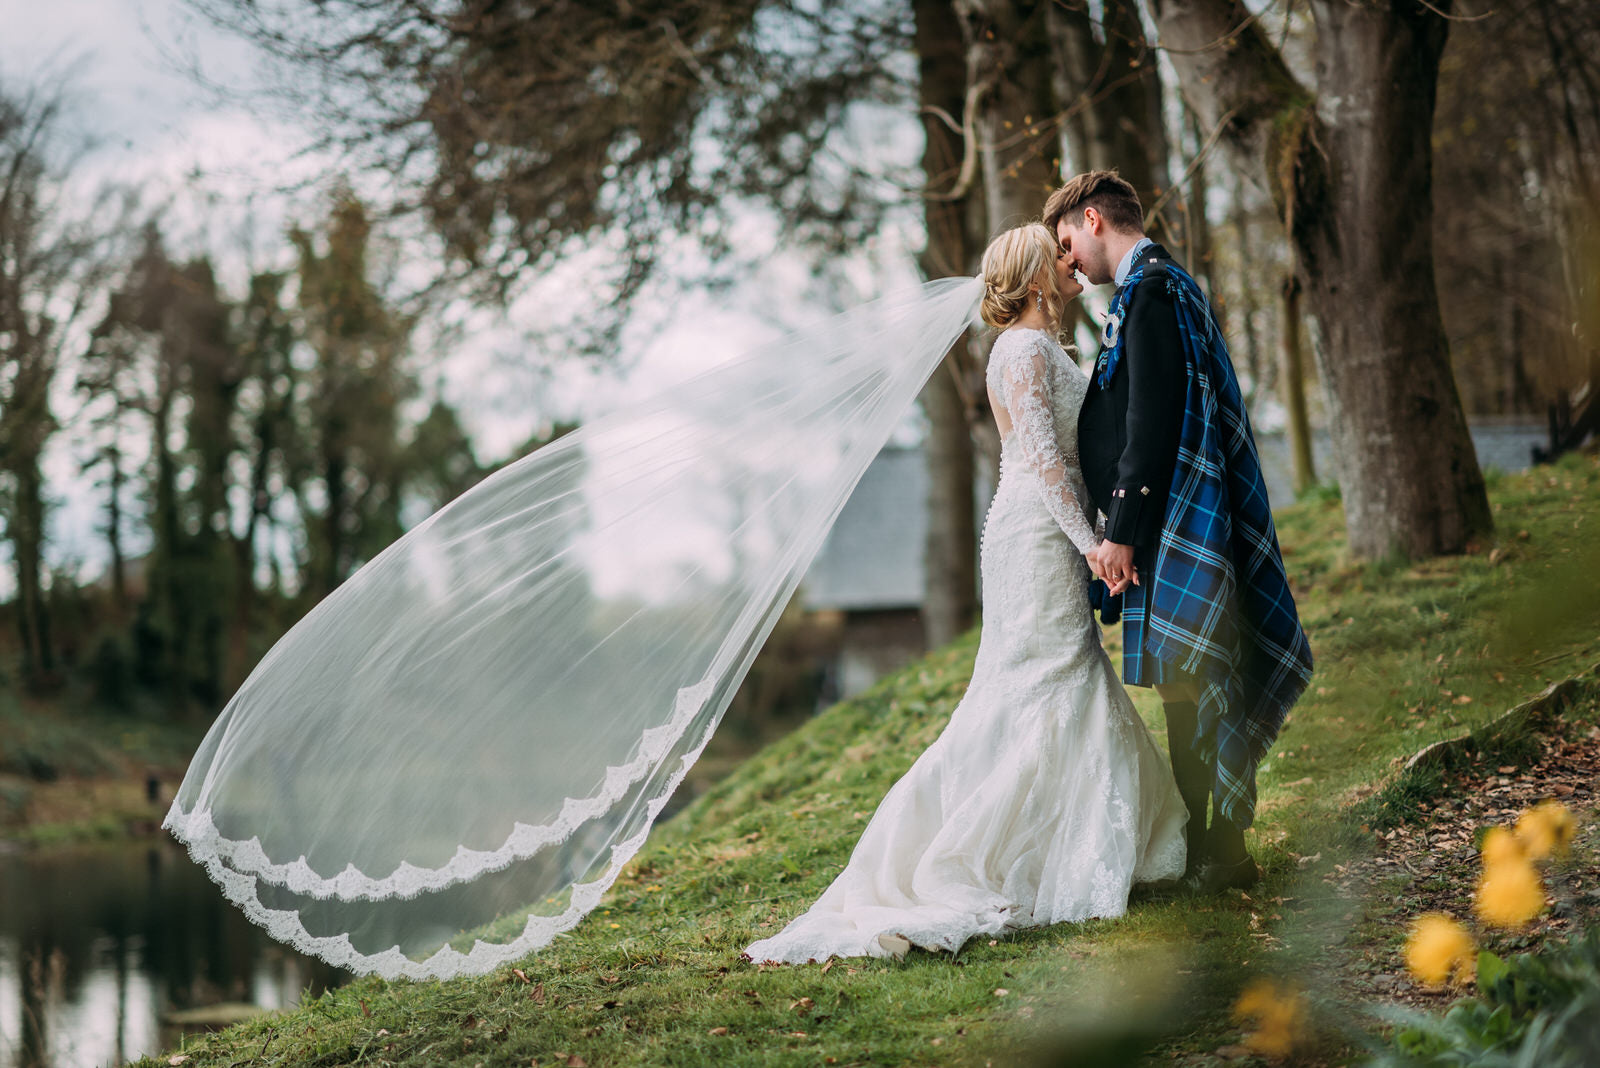 highlands wedding with long cathedral lace wedding veil